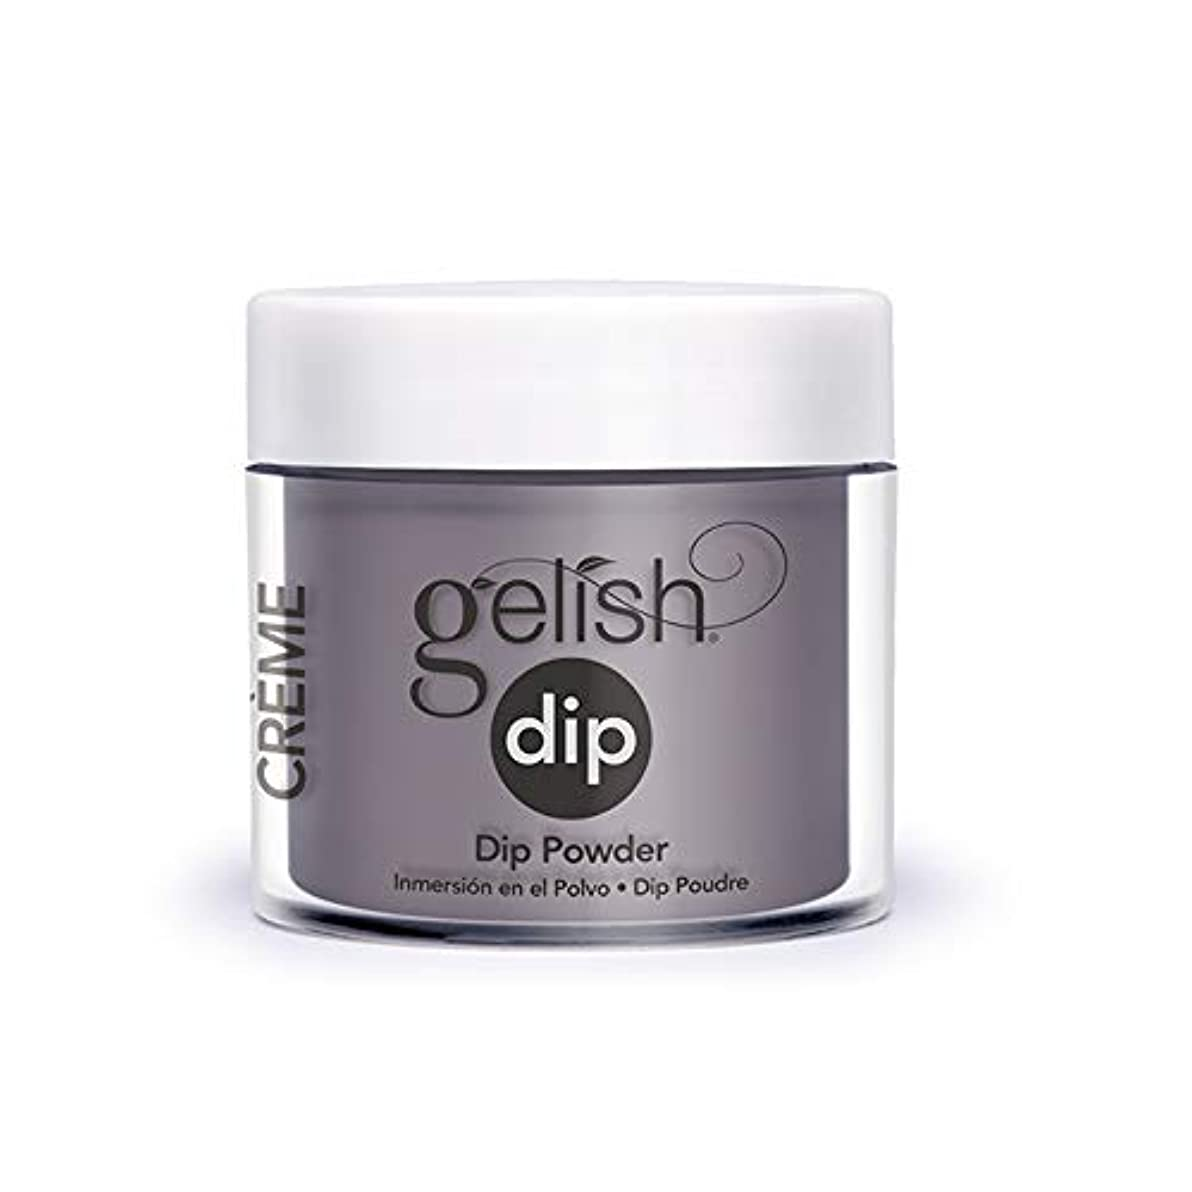 信頼性のあるシネウィ歪めるHarmony Gelish - Acrylic Dip Powder - Met my Match - 23g / 0.8oz